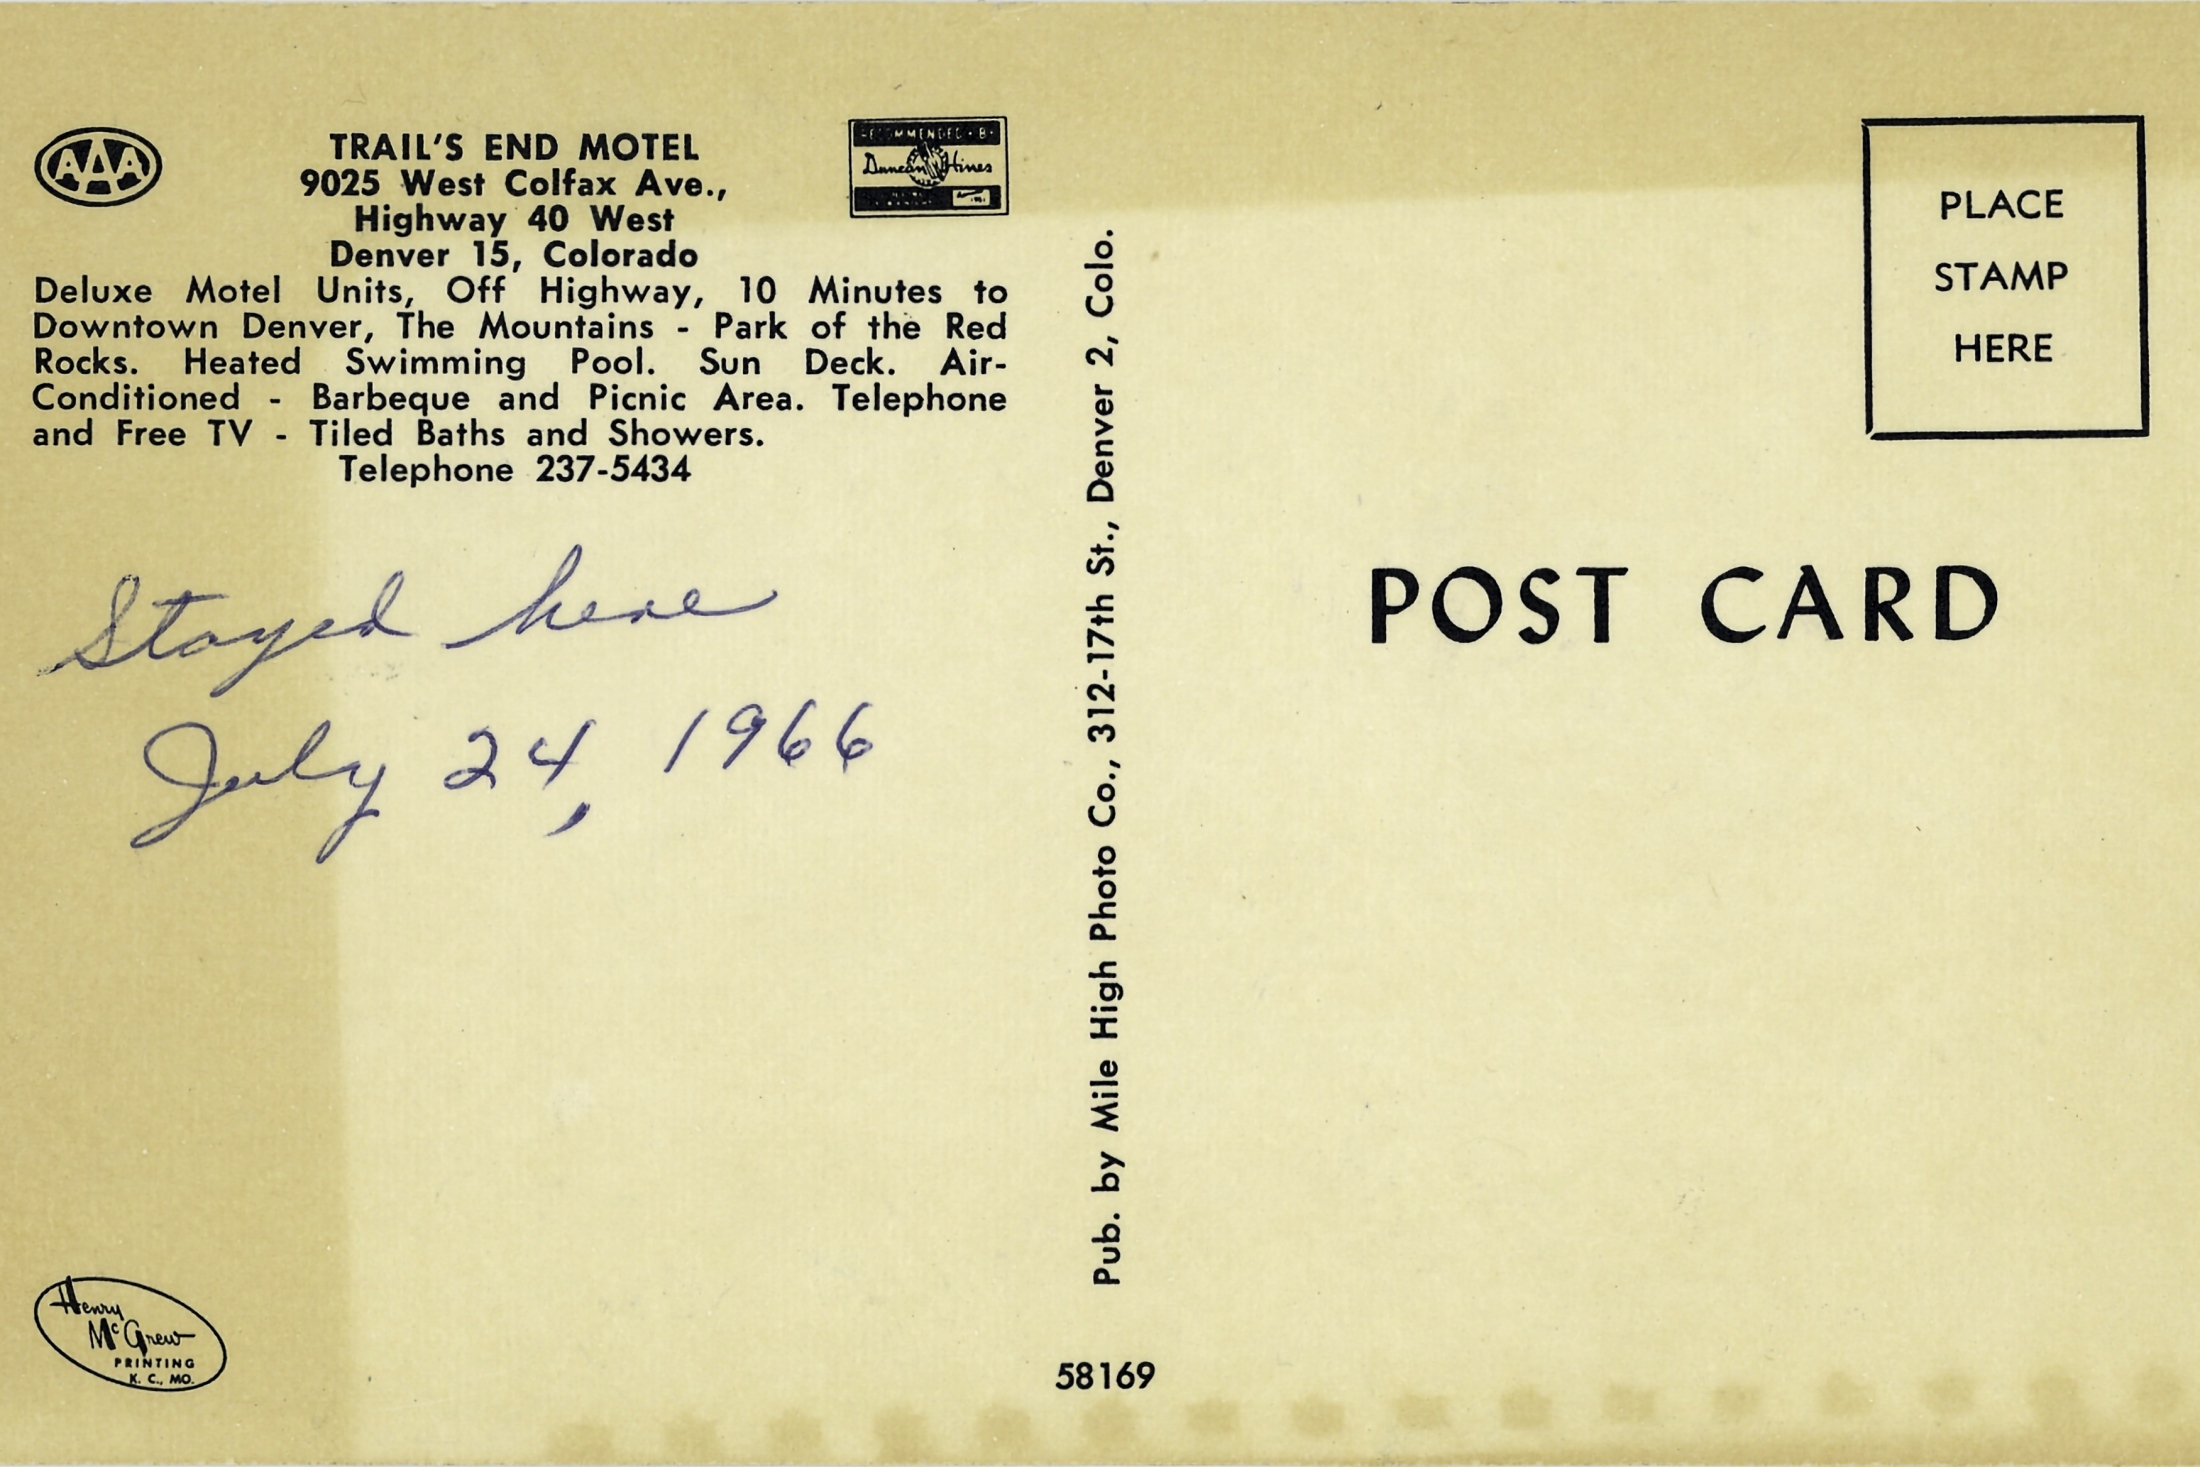 An old postcard from an old road motel from Colfax Avenue. On it's back, the text reads 'Stayed Here, July 24, 1966'. Denver, CO. 2018.